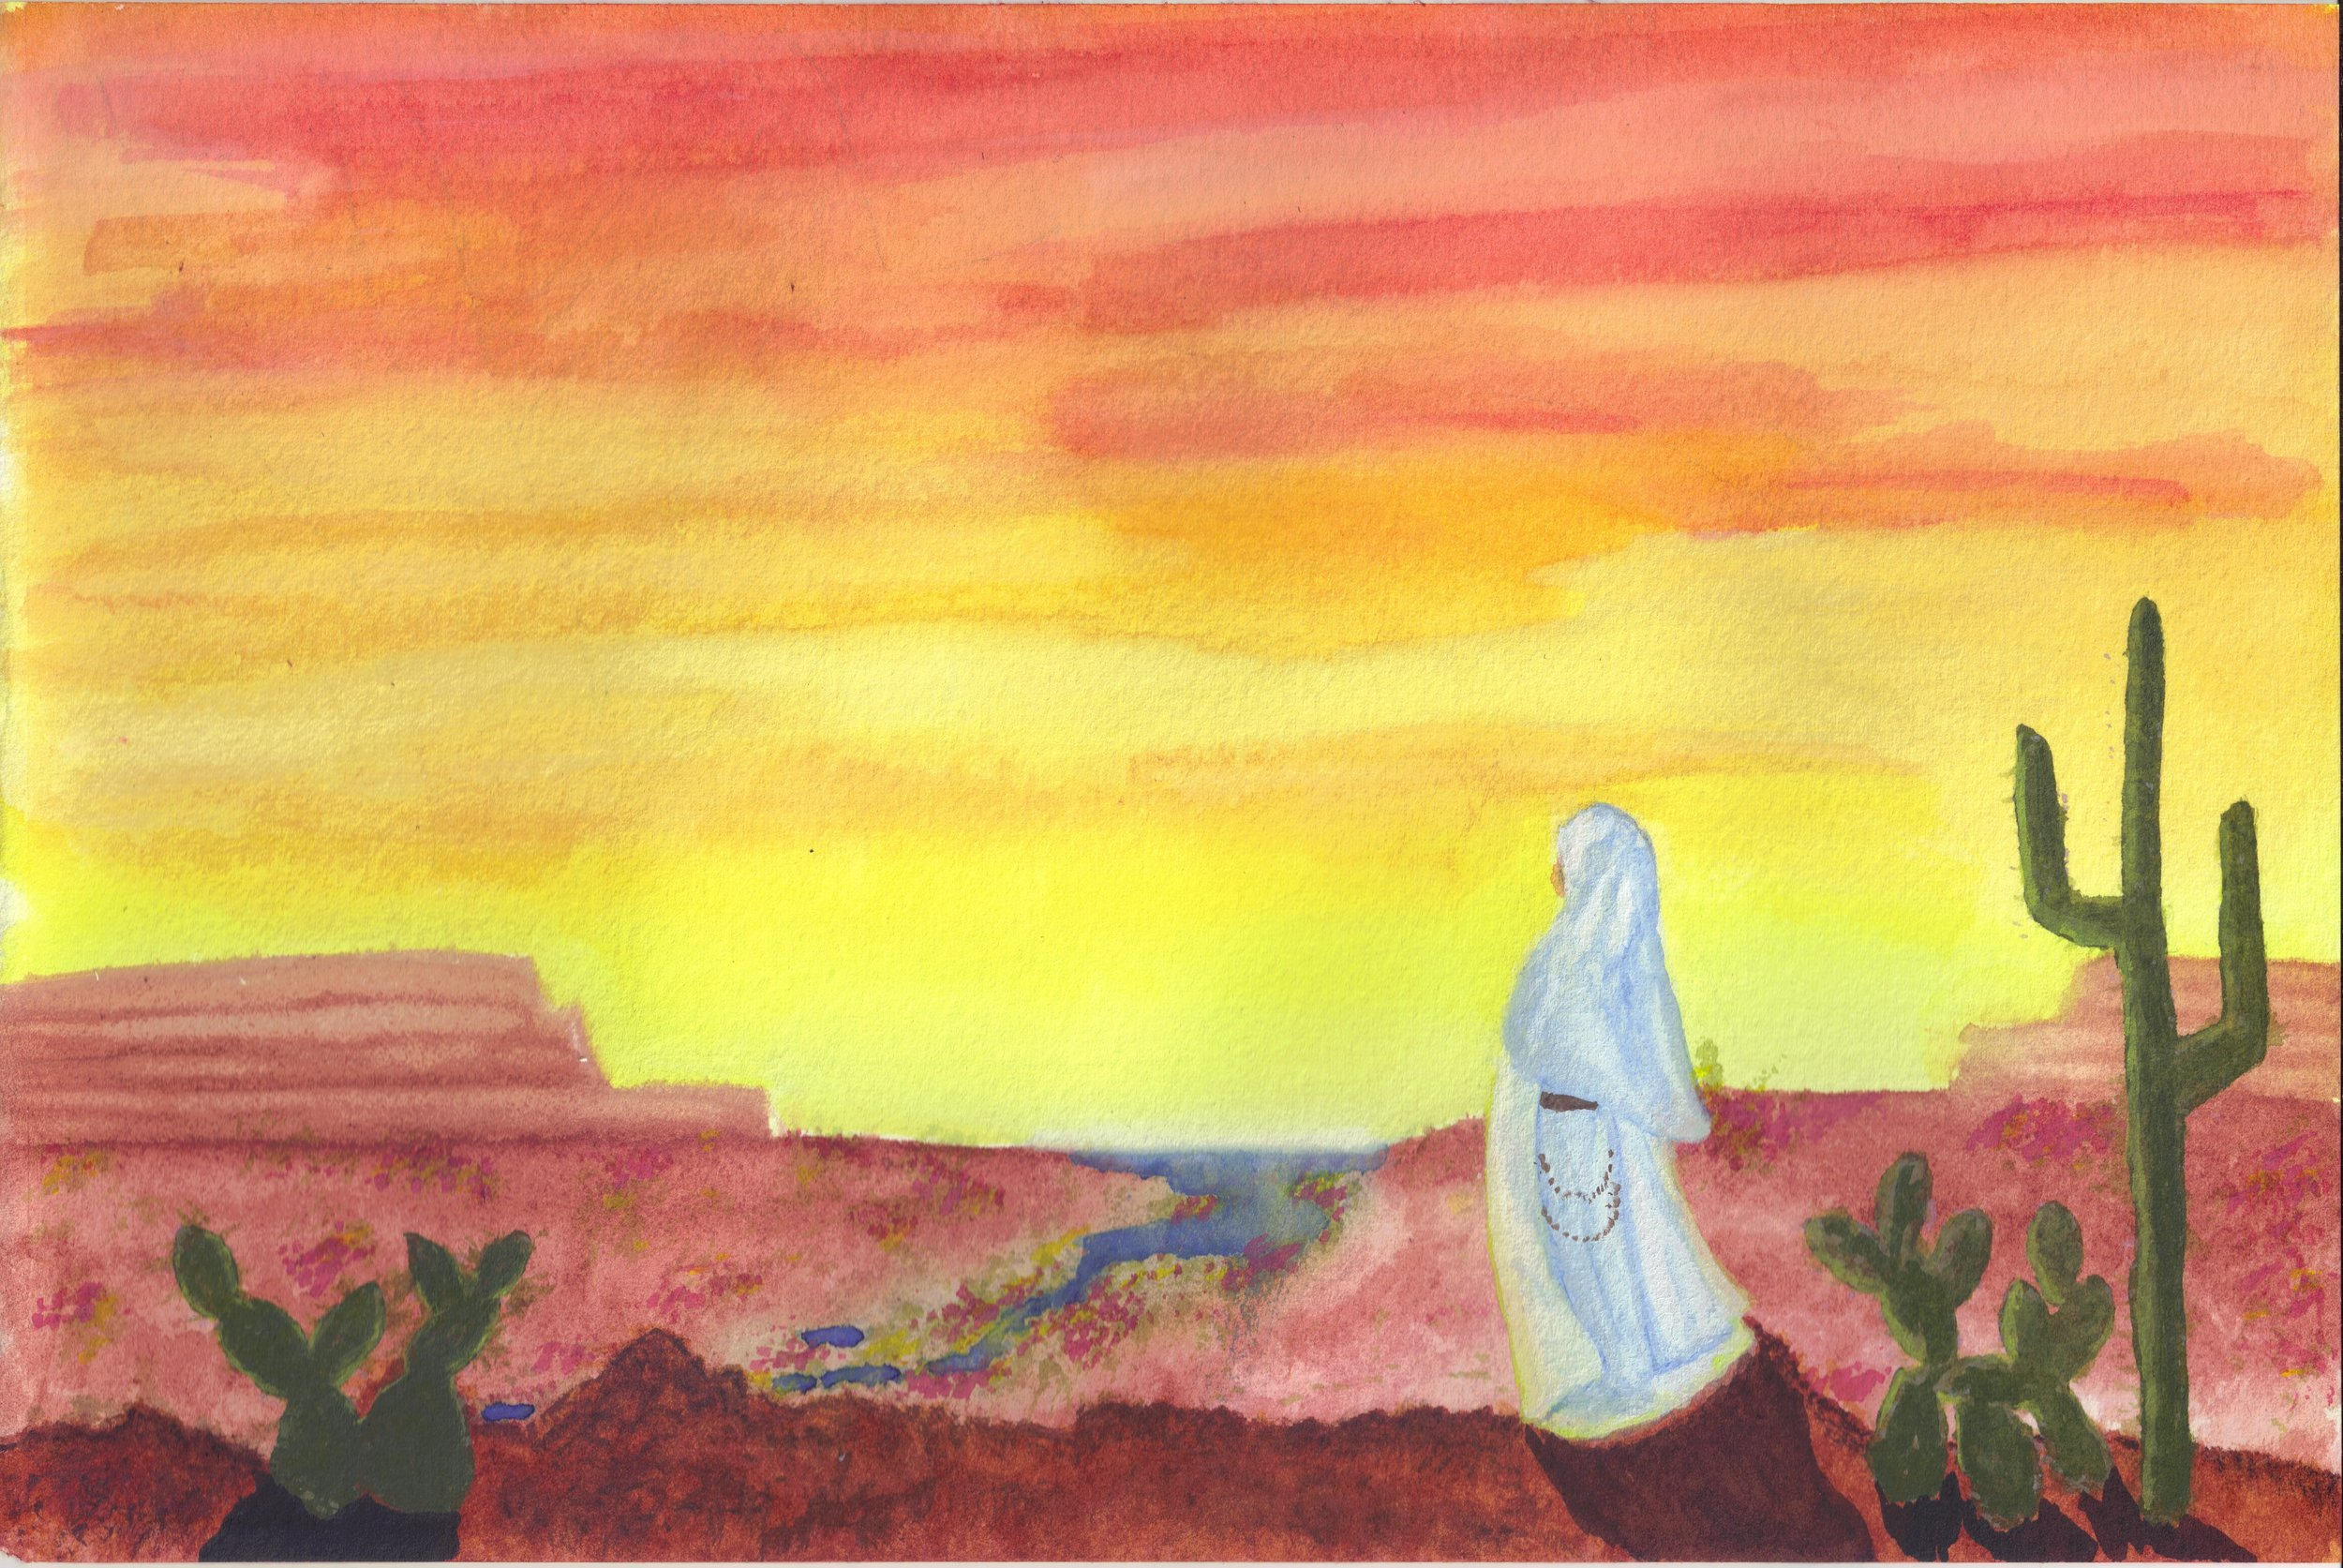 I will lead her into the desert and allure her…